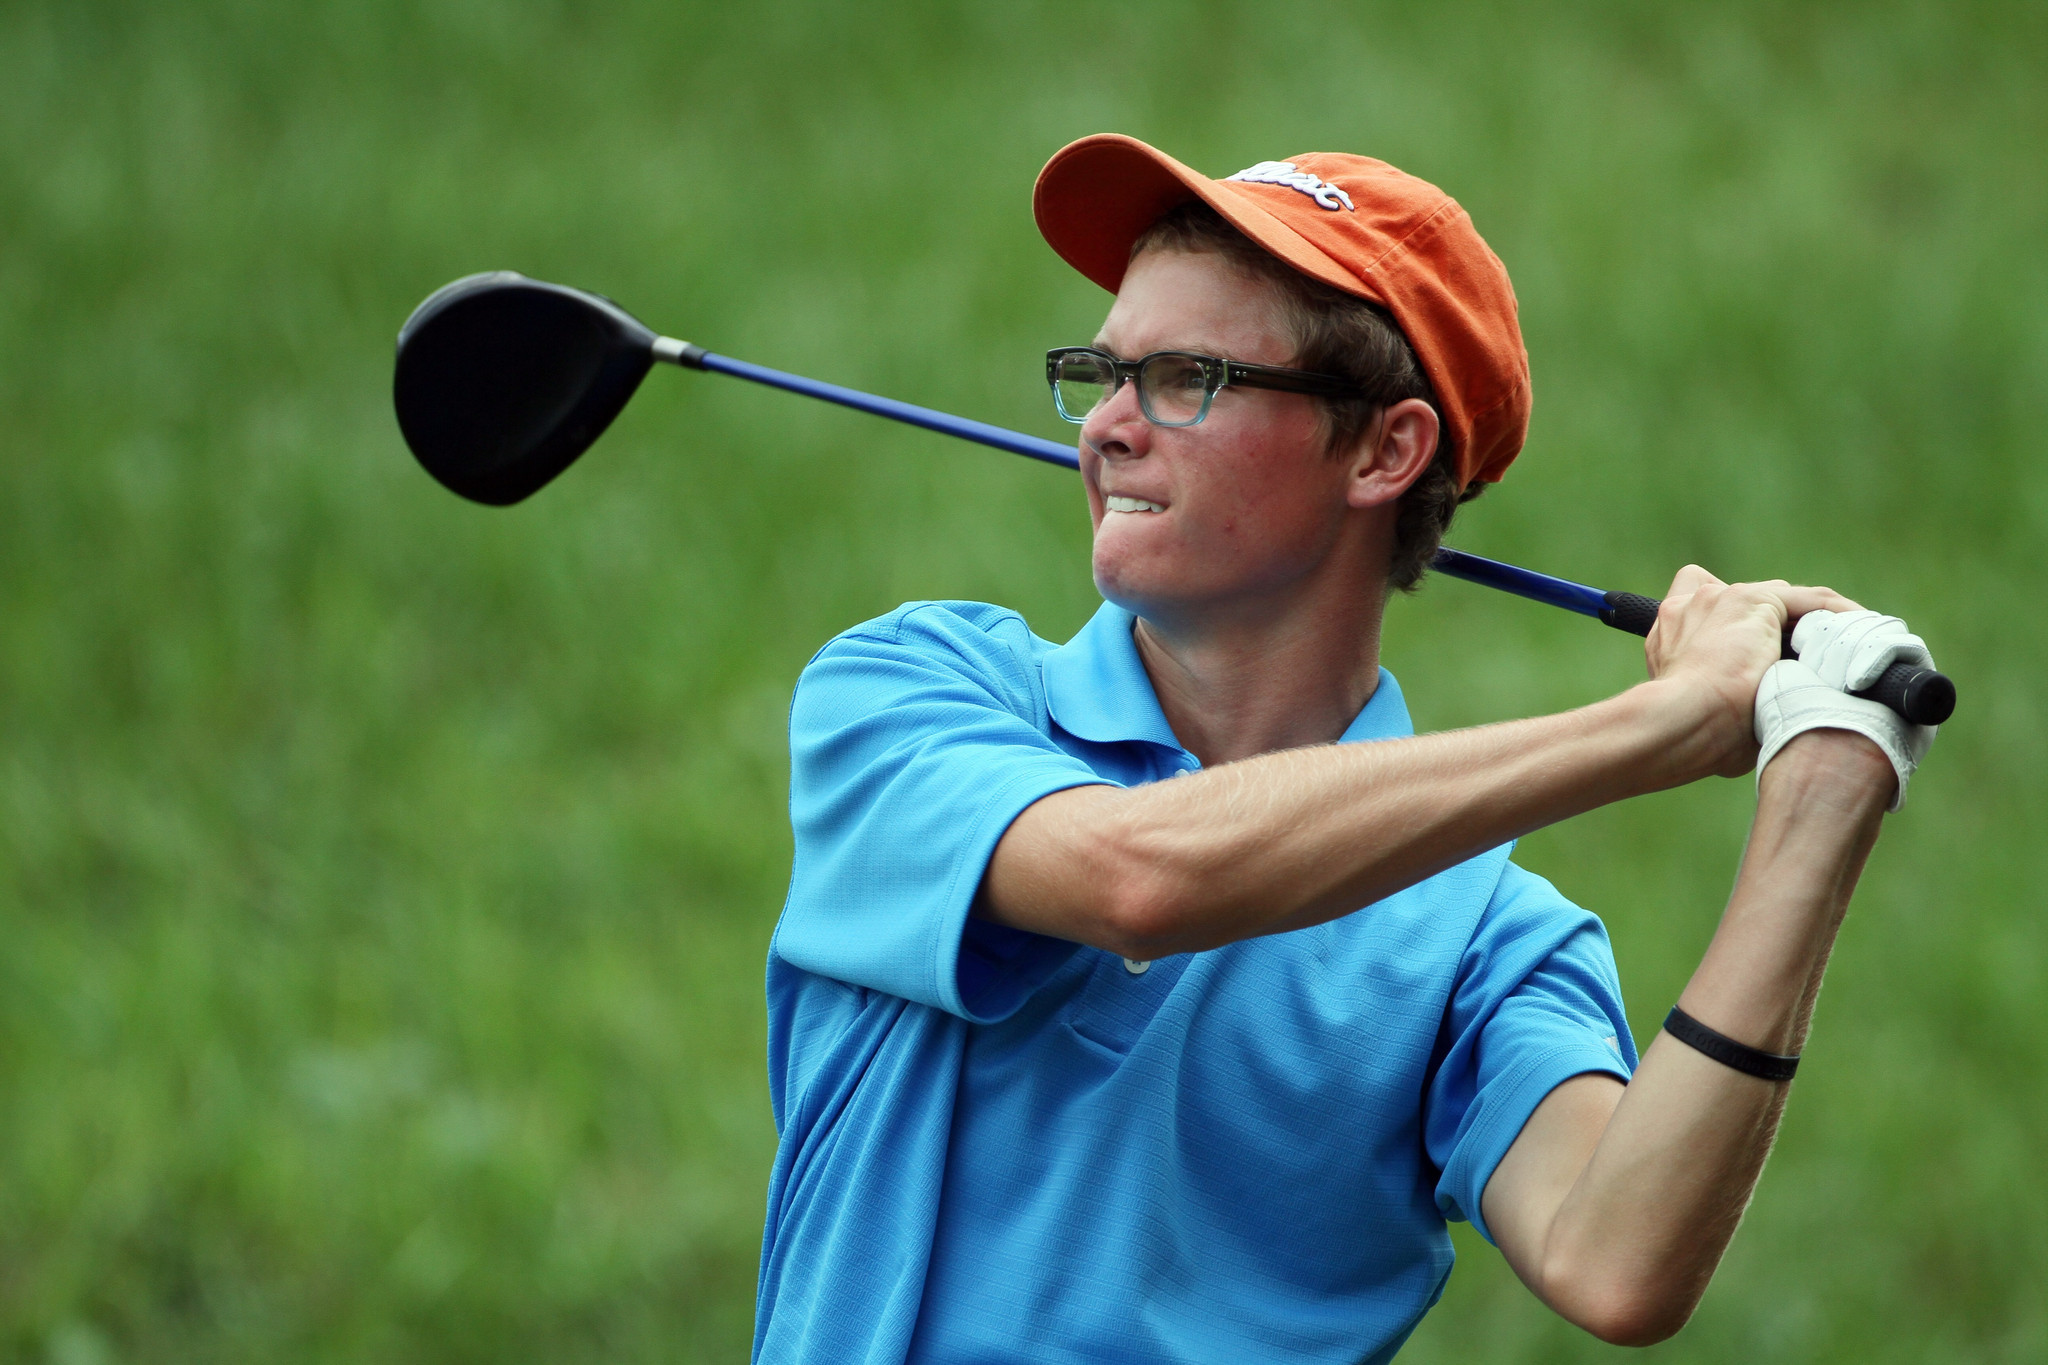 West Orange's Kyler Tate won the Metro West Championship with a 5-under 67.